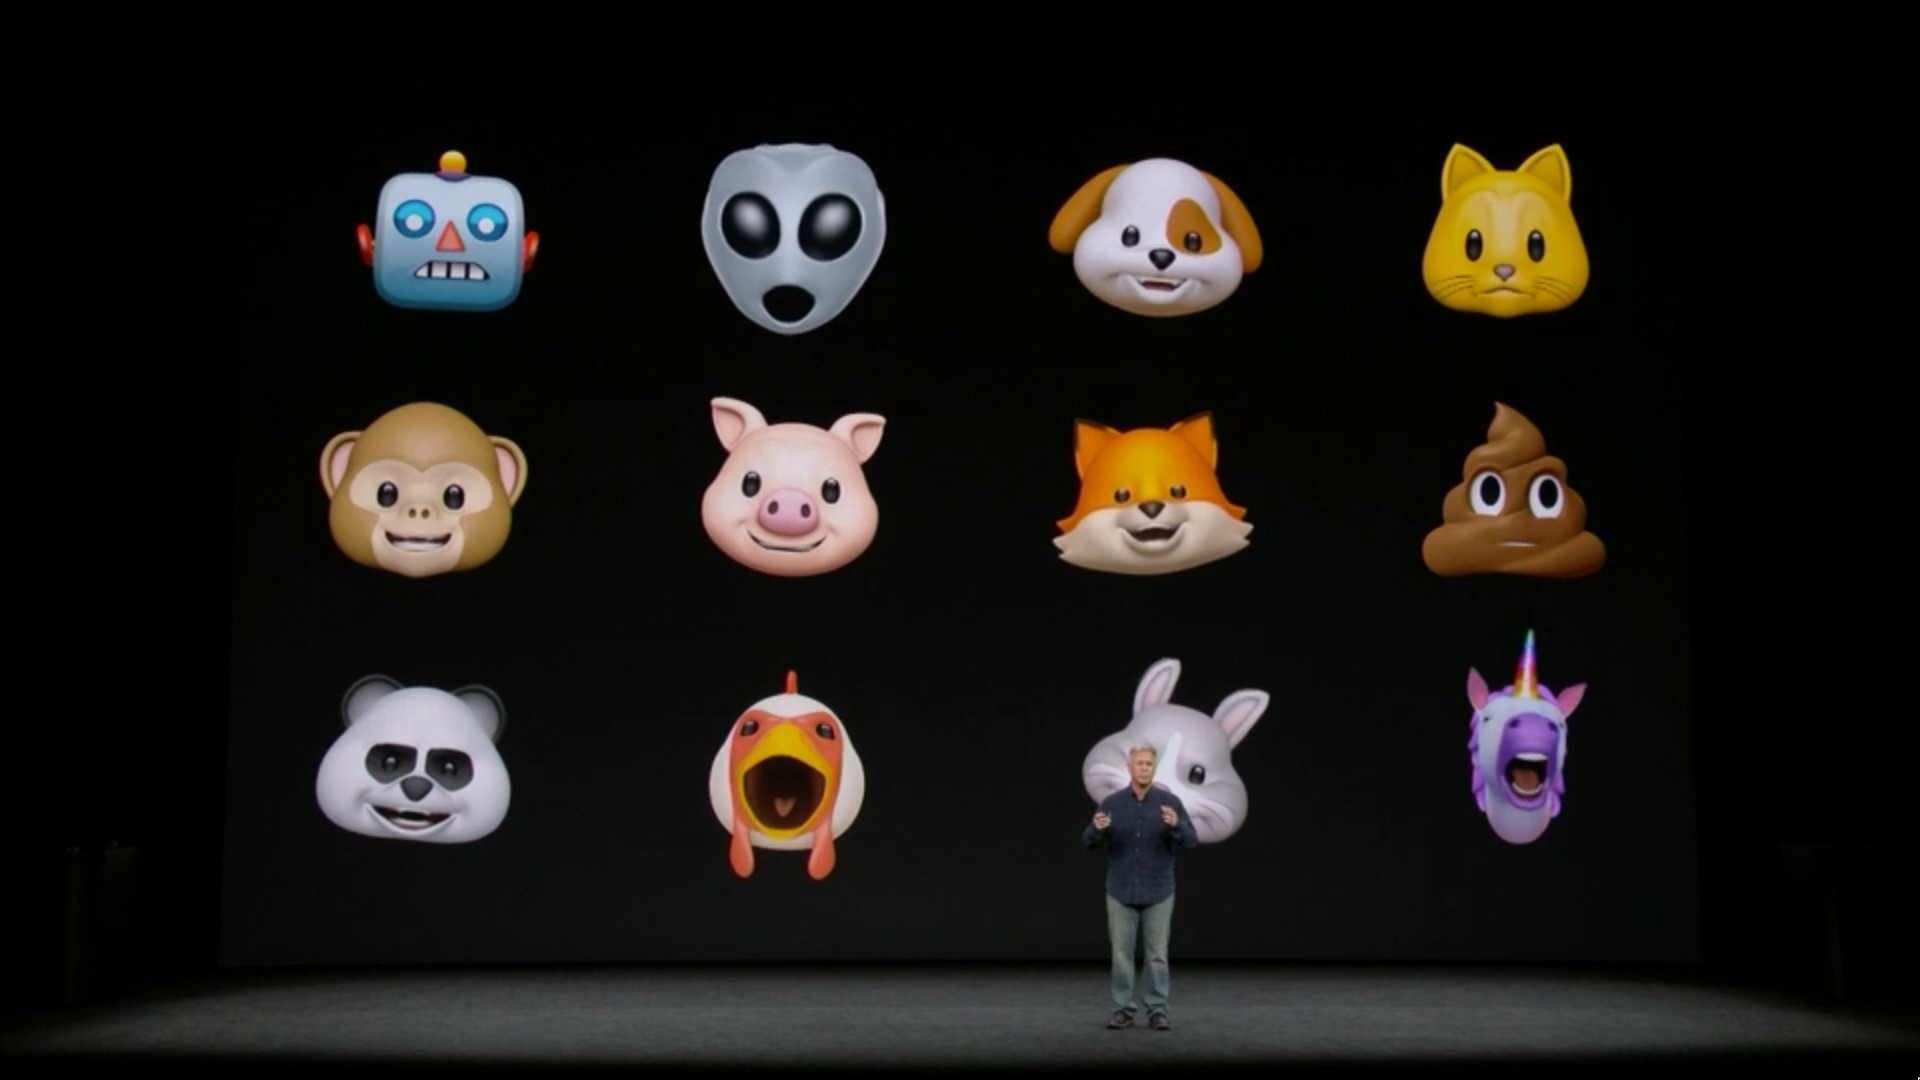 Apple Announces Animoji Animated Emoji For IPhone X